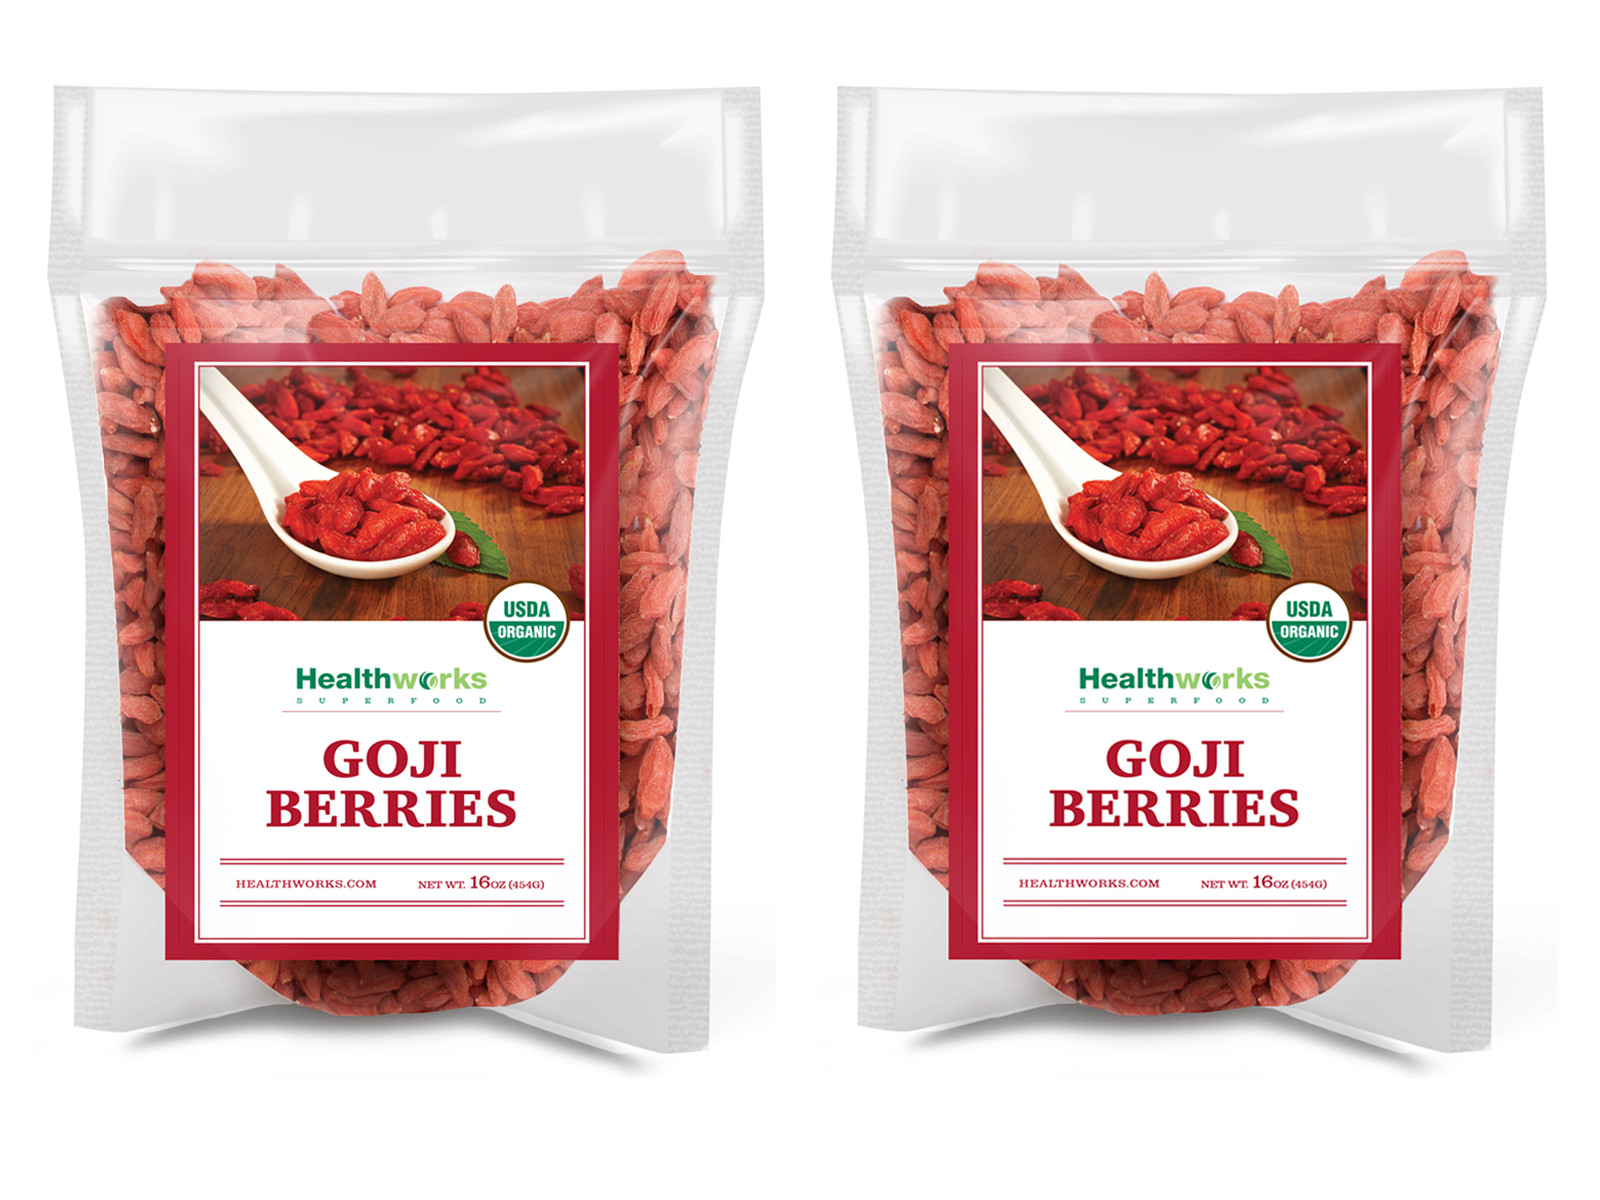 Healthworks Goji Berries Raw Organic, 2lb (2 1lb Packs) - Healthworks Superfood Organic